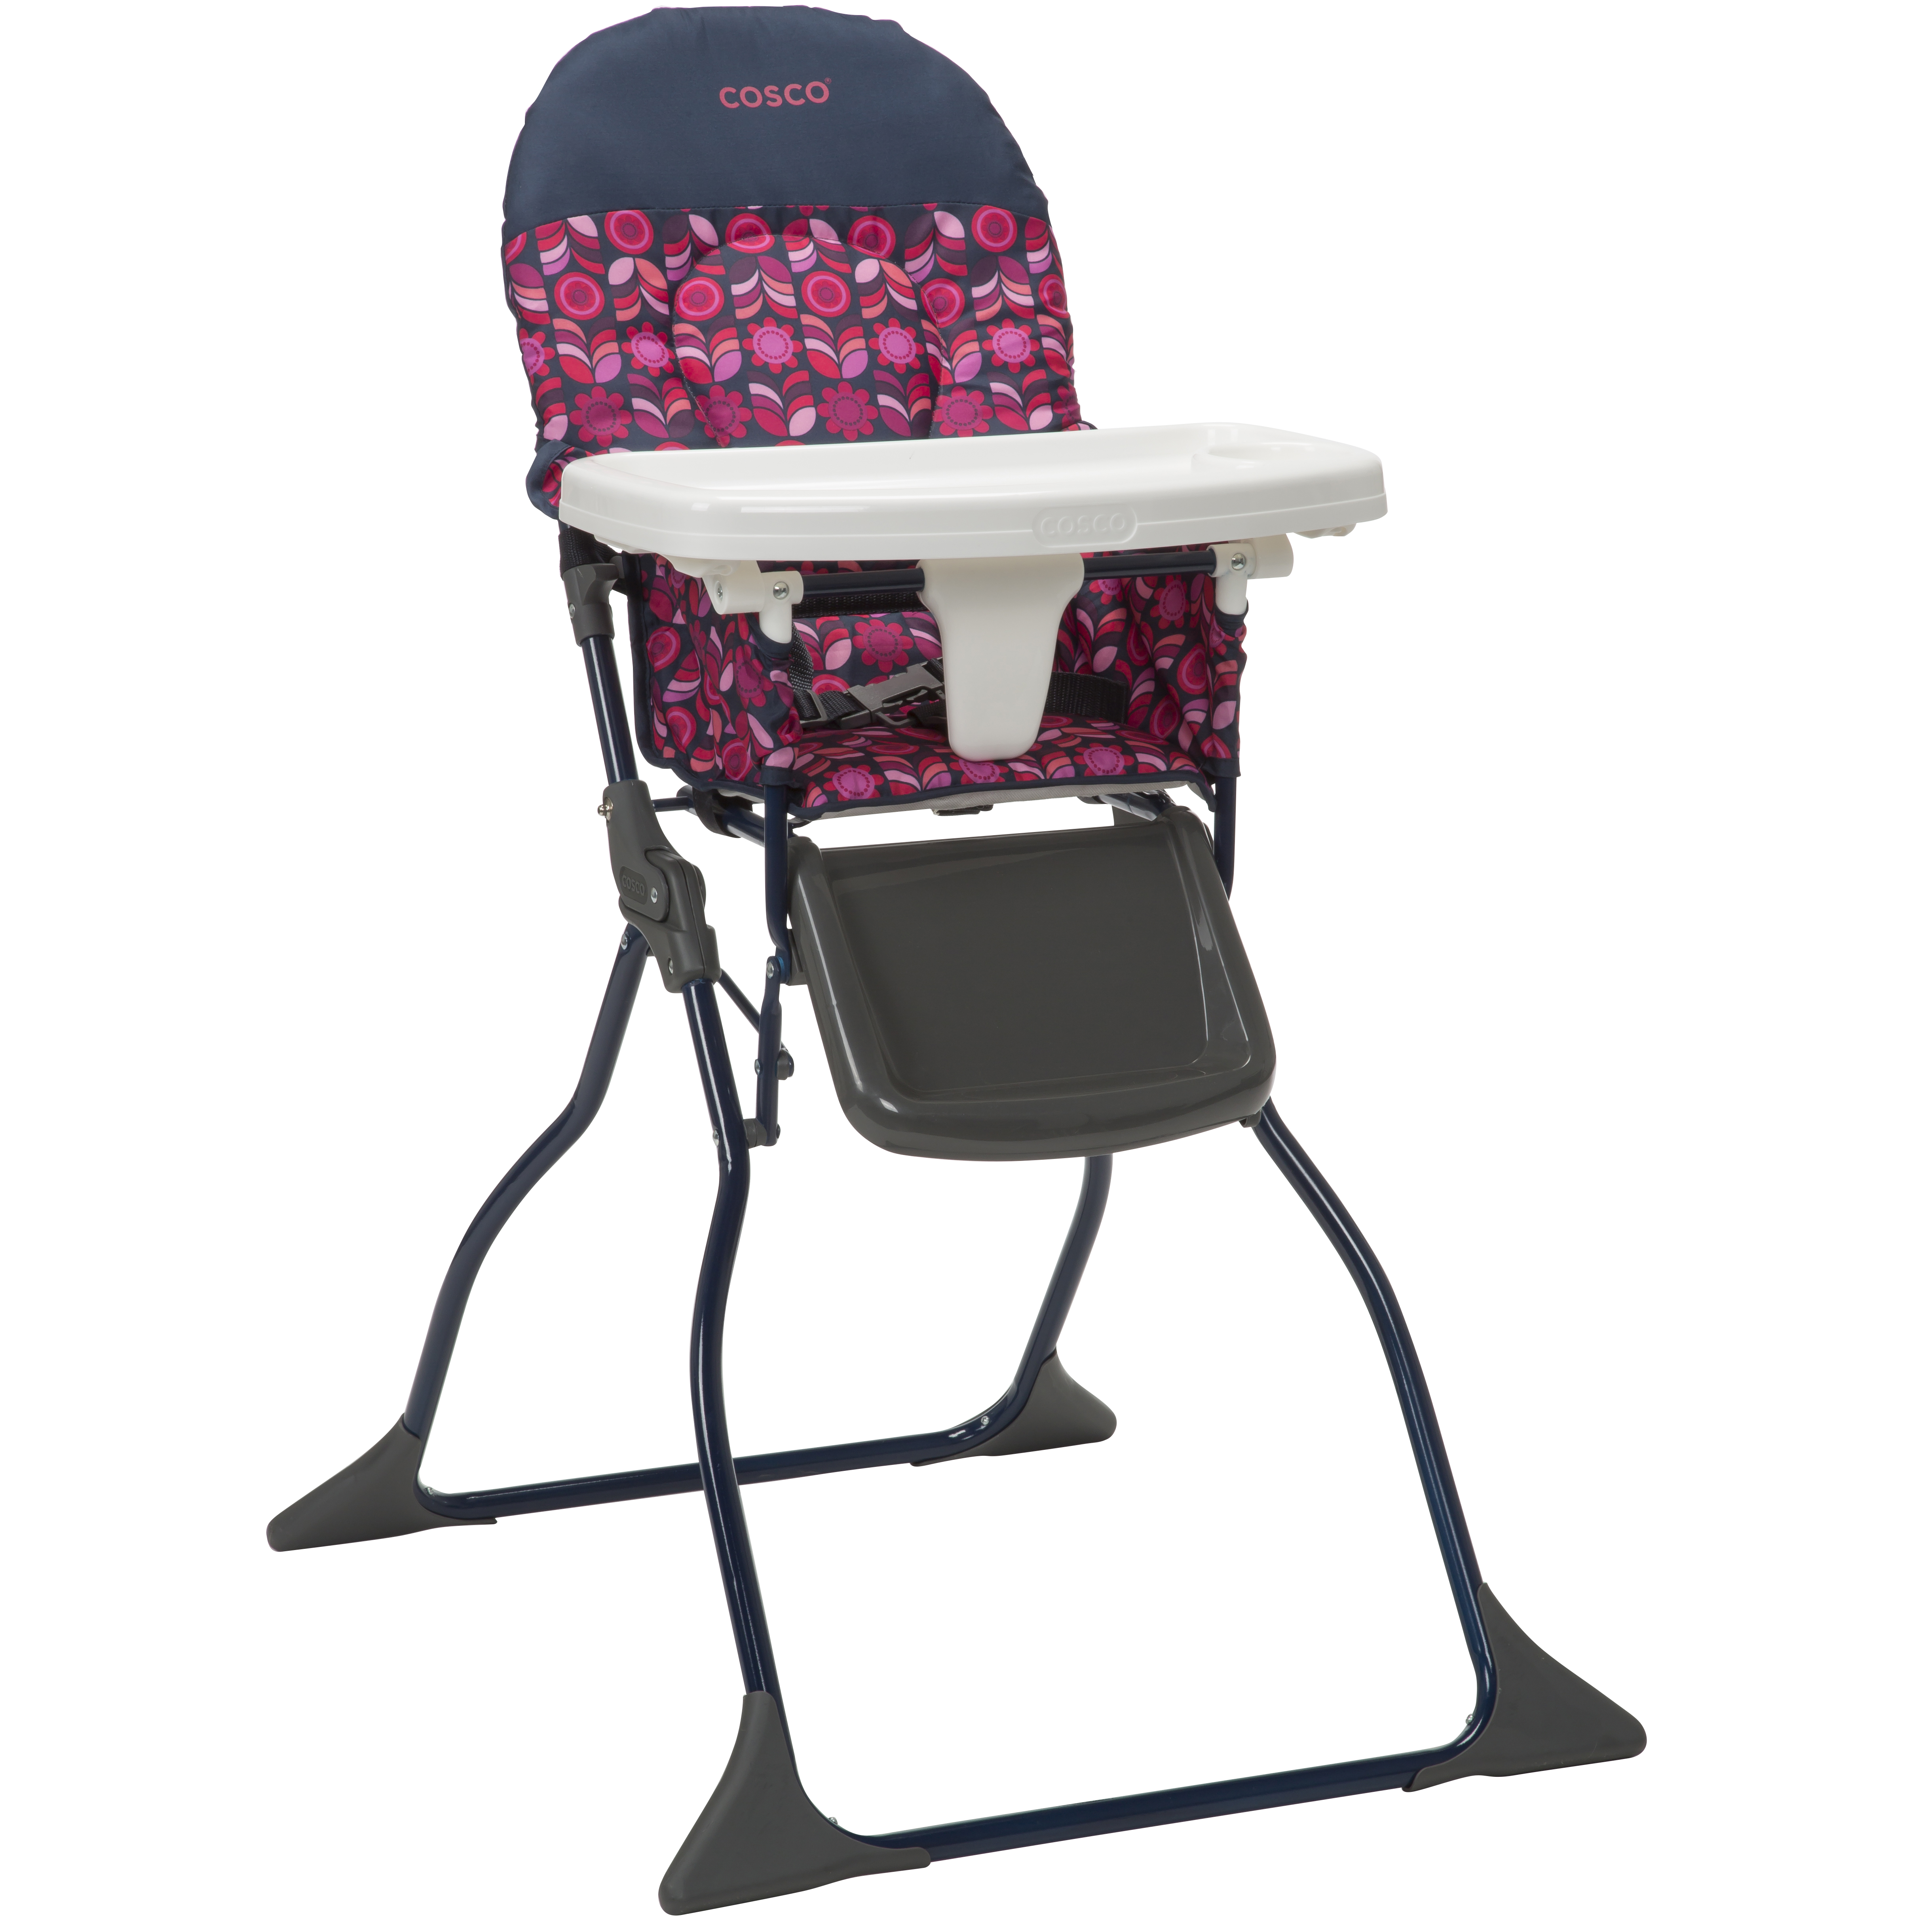 burlington baby high chairs summer chair booster seat cosco simple fold geo floral